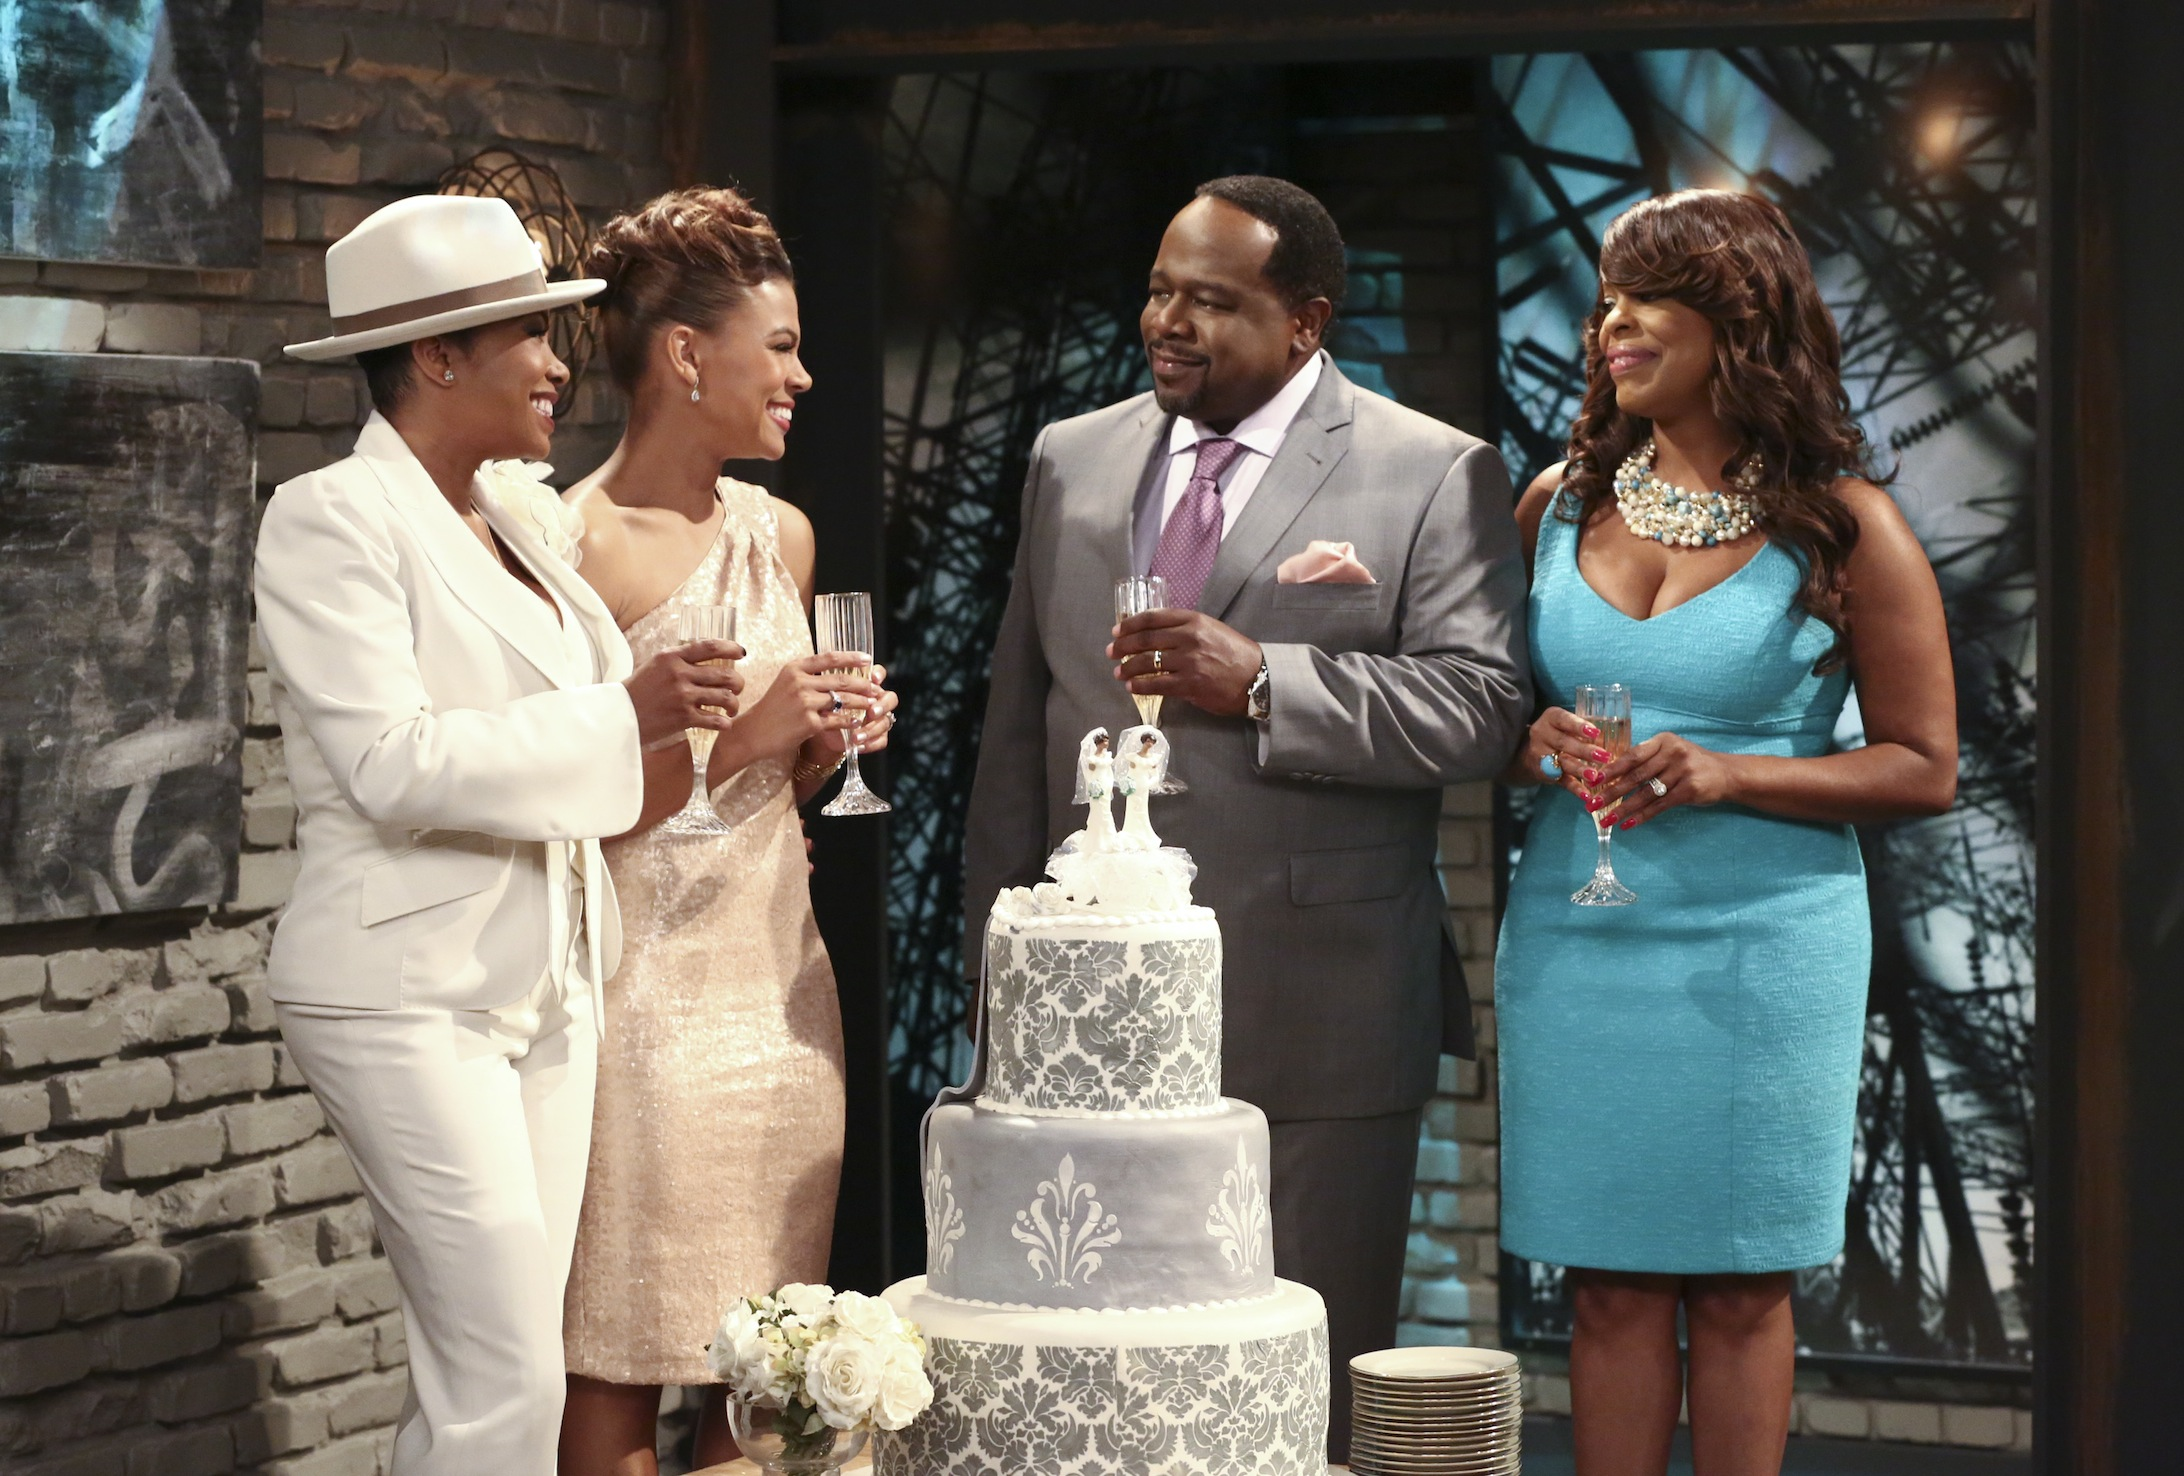 The Soul Man's Parker and Tucks with Cedric and Nash celebrate their characters' marriage